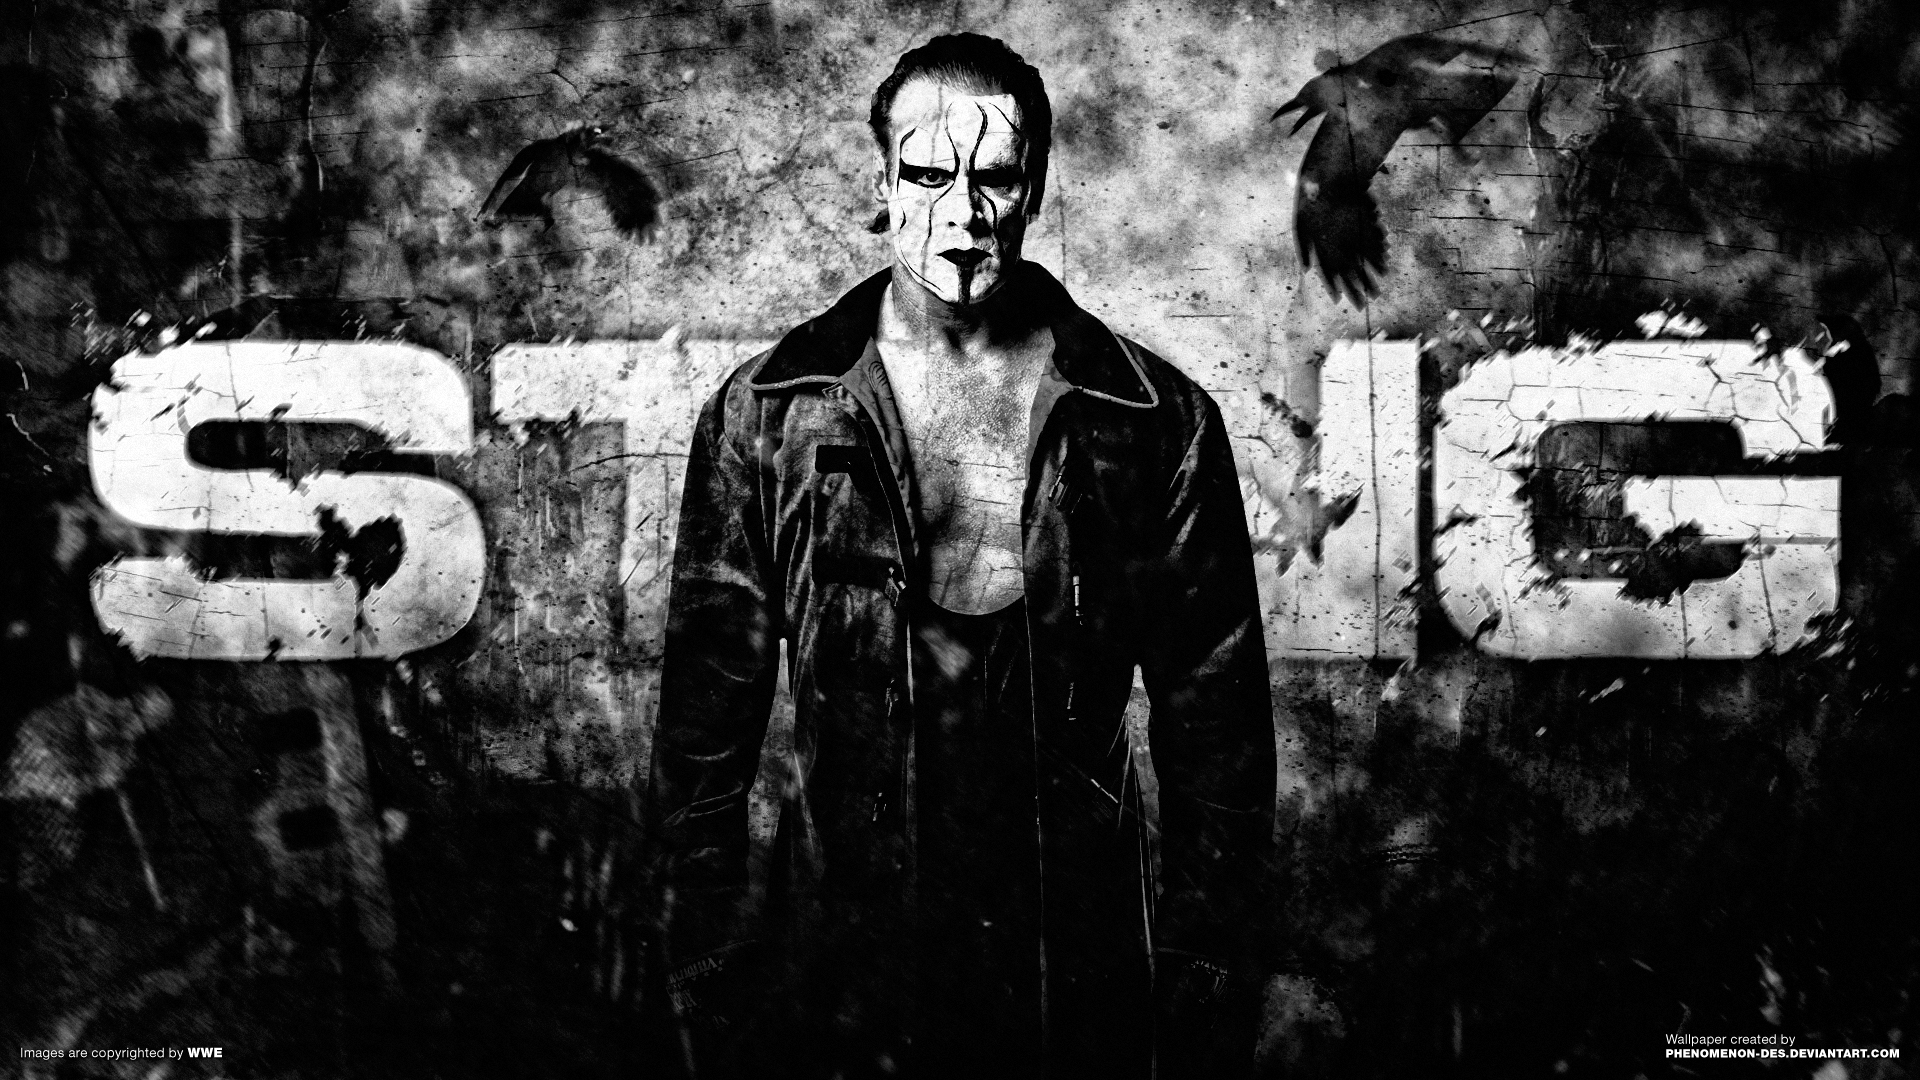 wwe_sting_wallpaper_by_phenomenon_des-d89gd7n.jpg